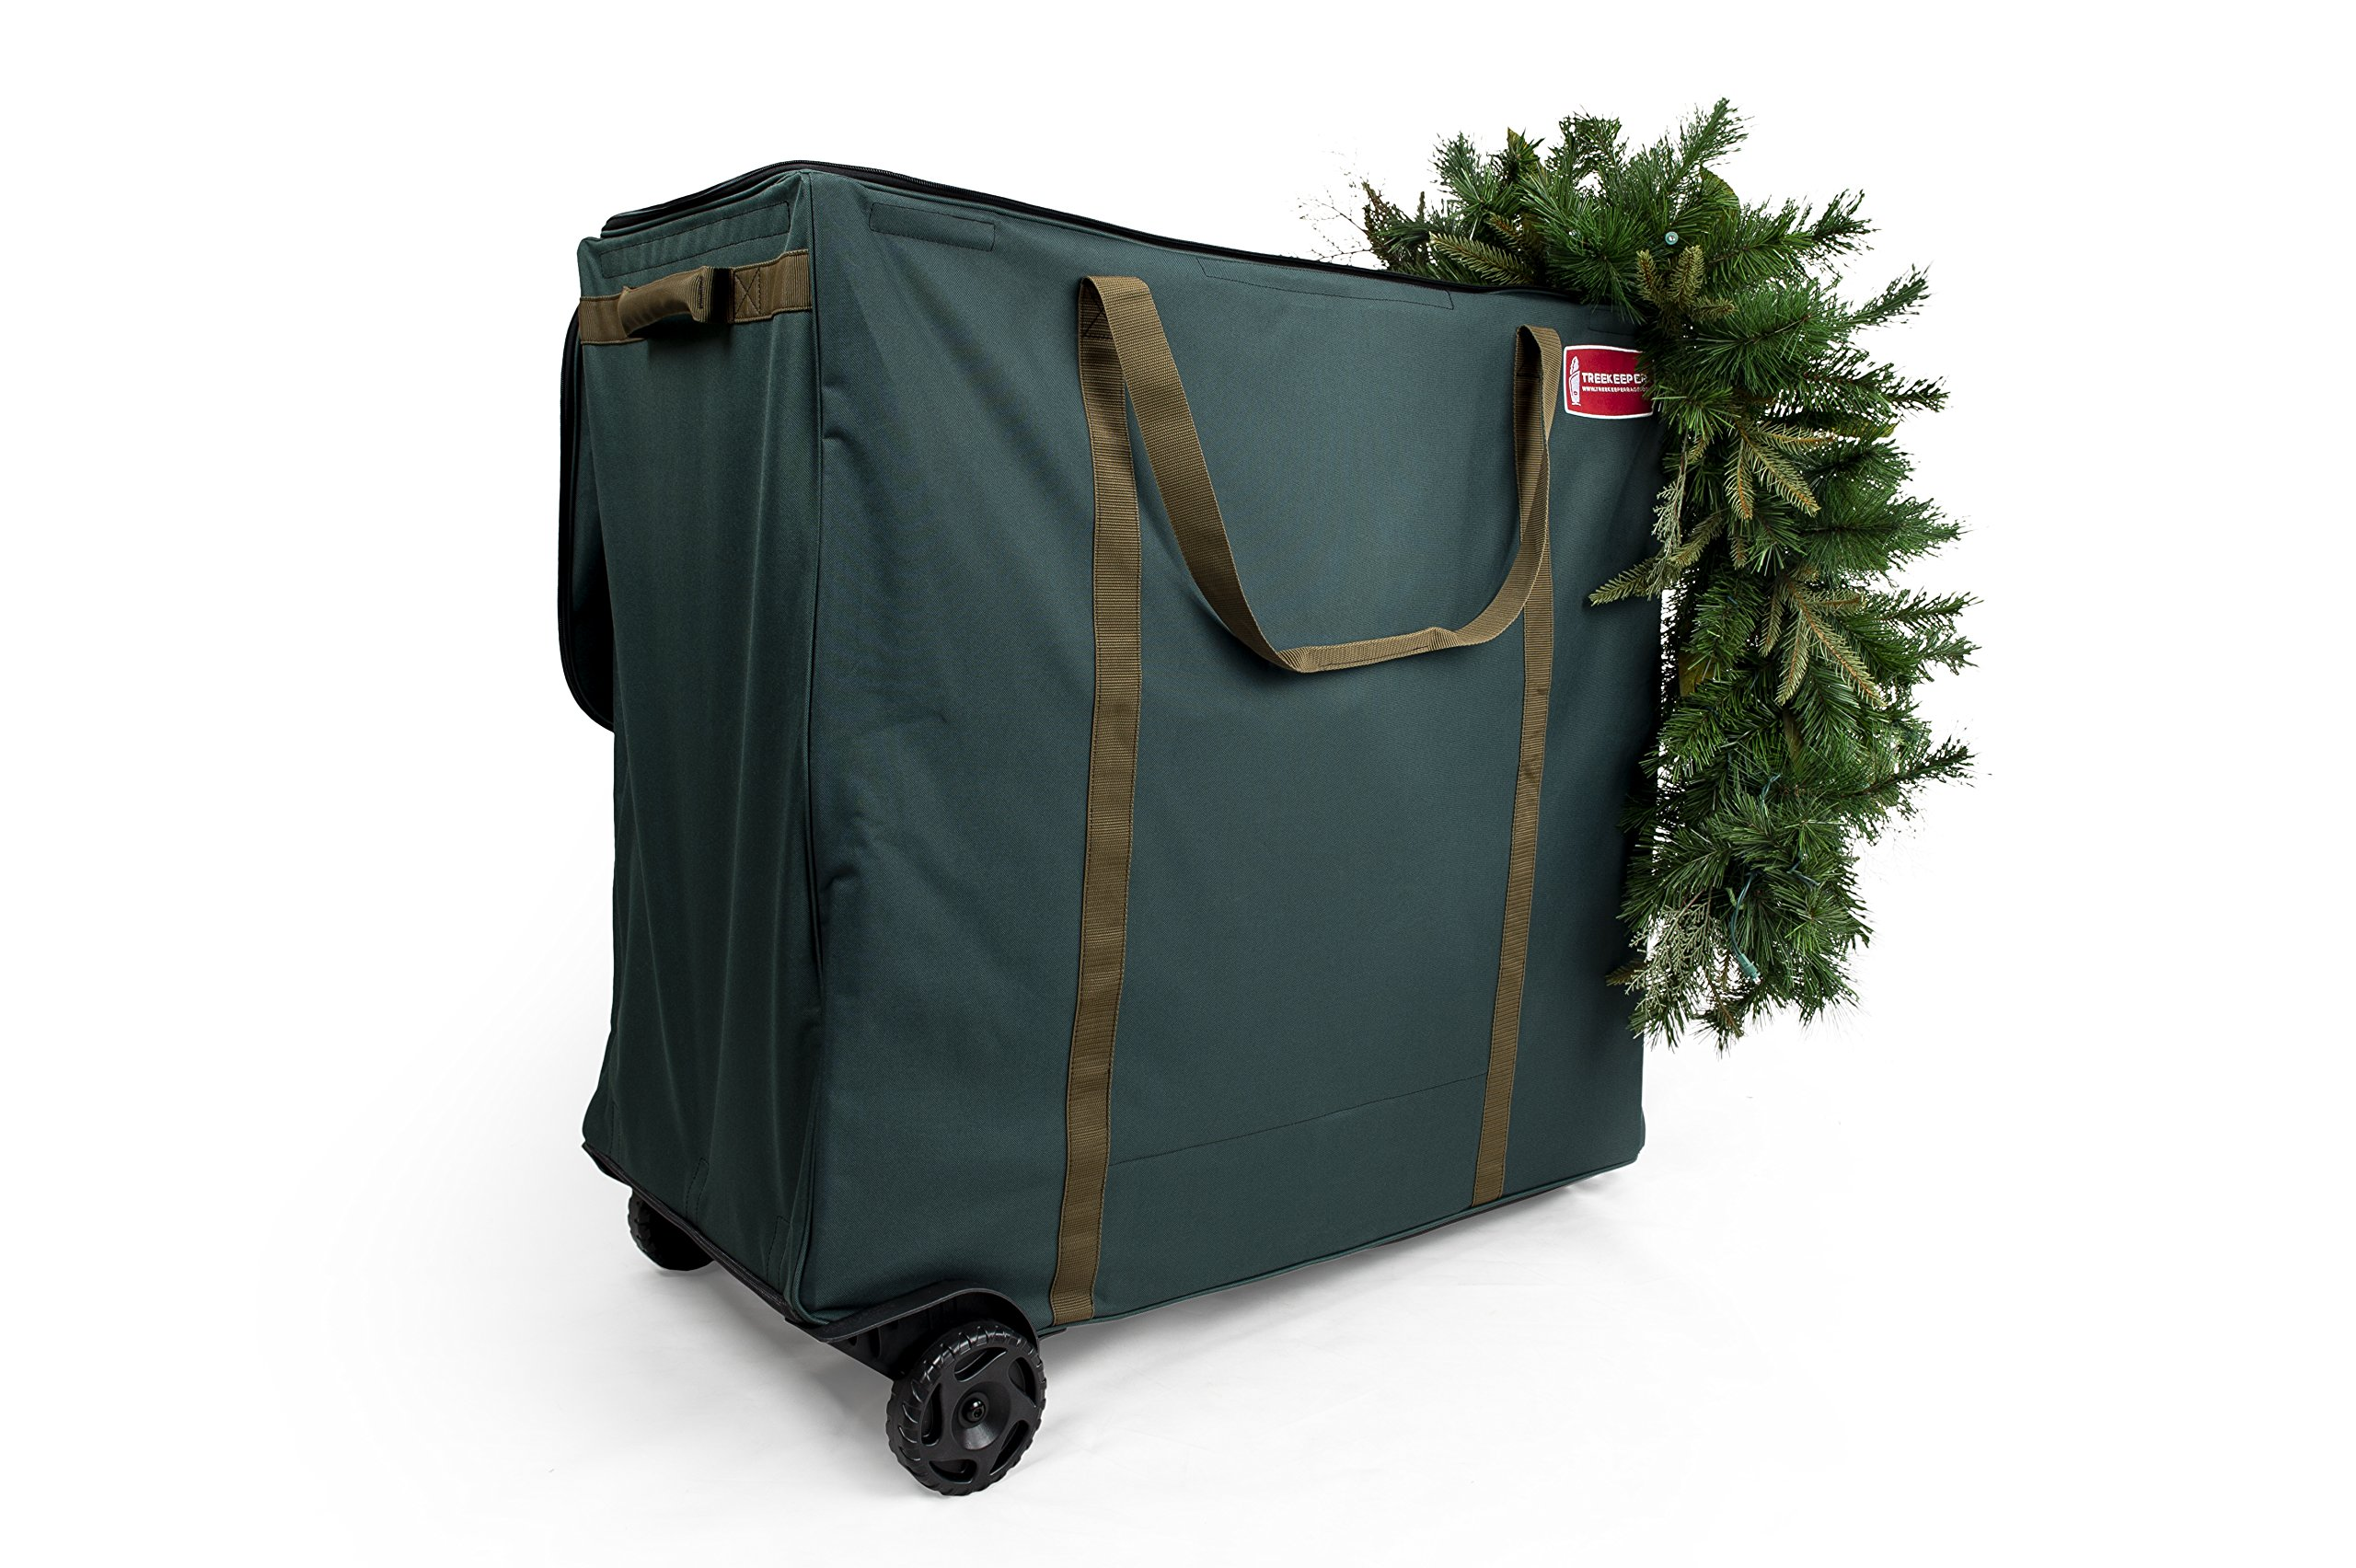 TreeKeeper Bags Rolling Multi Use Storage Bag for Christmas Decorations Featuring Big Wheels